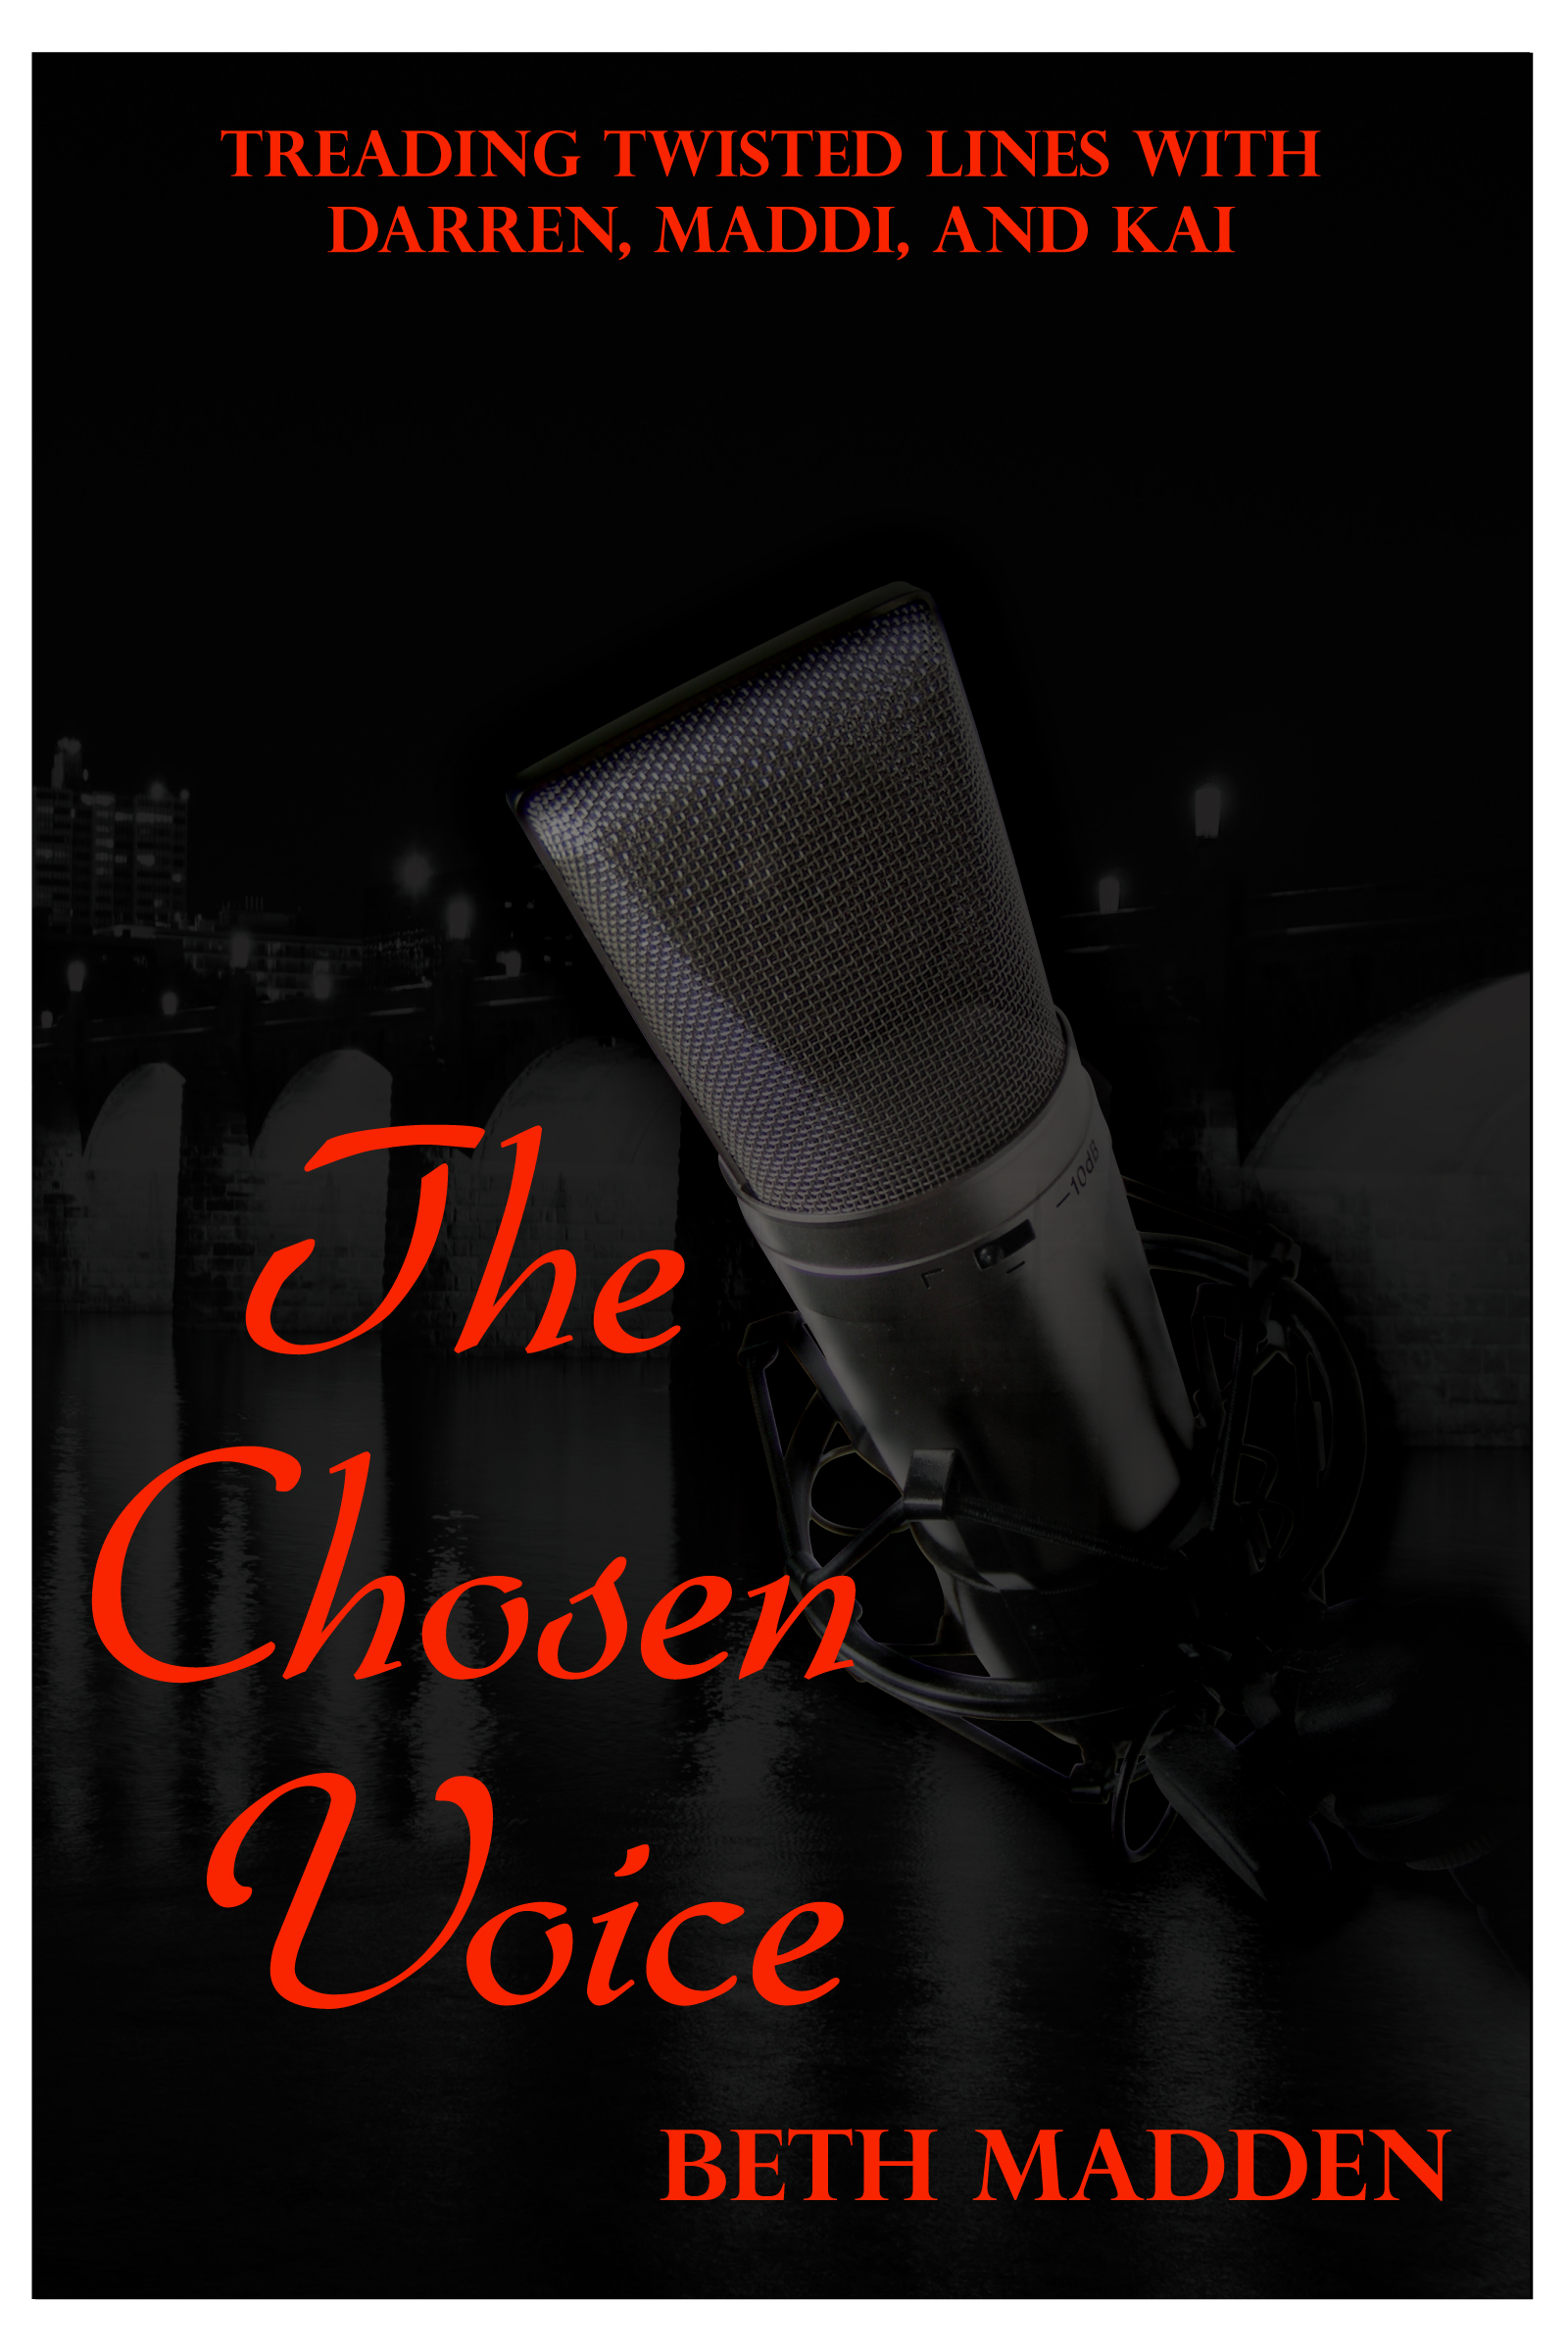 The Chosen Voice